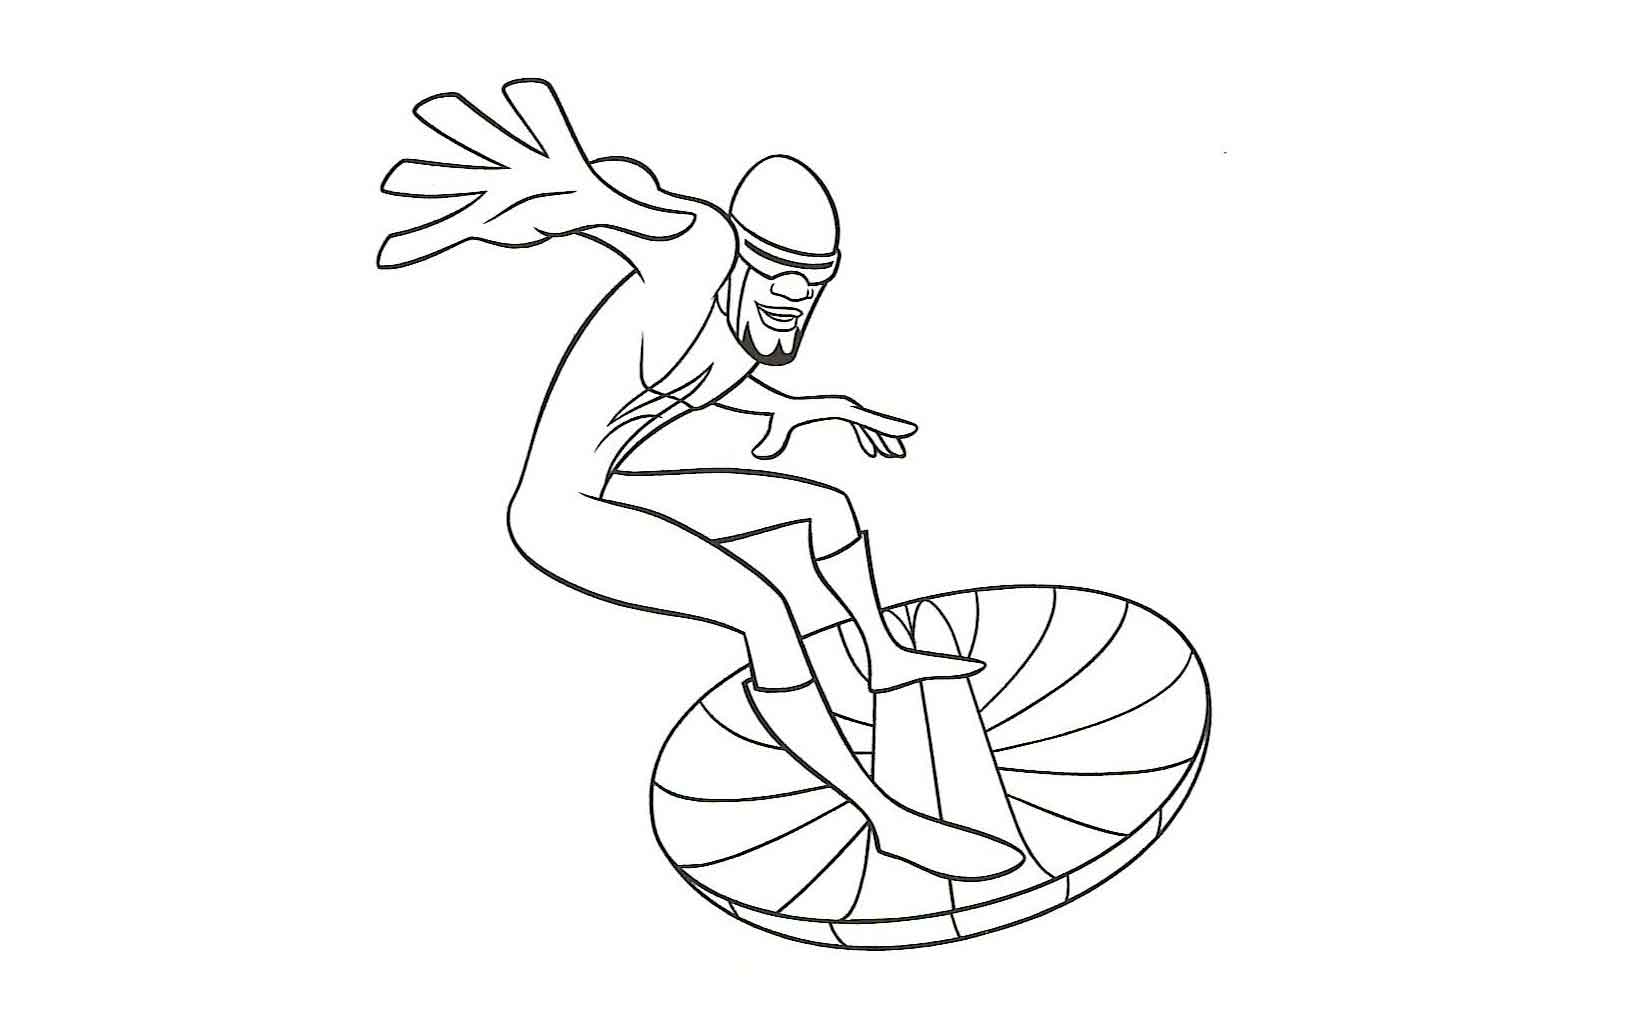 free incredibles 2 coloring pages the incredibles coloring pages disneyclipscom incredibles coloring 2 pages free